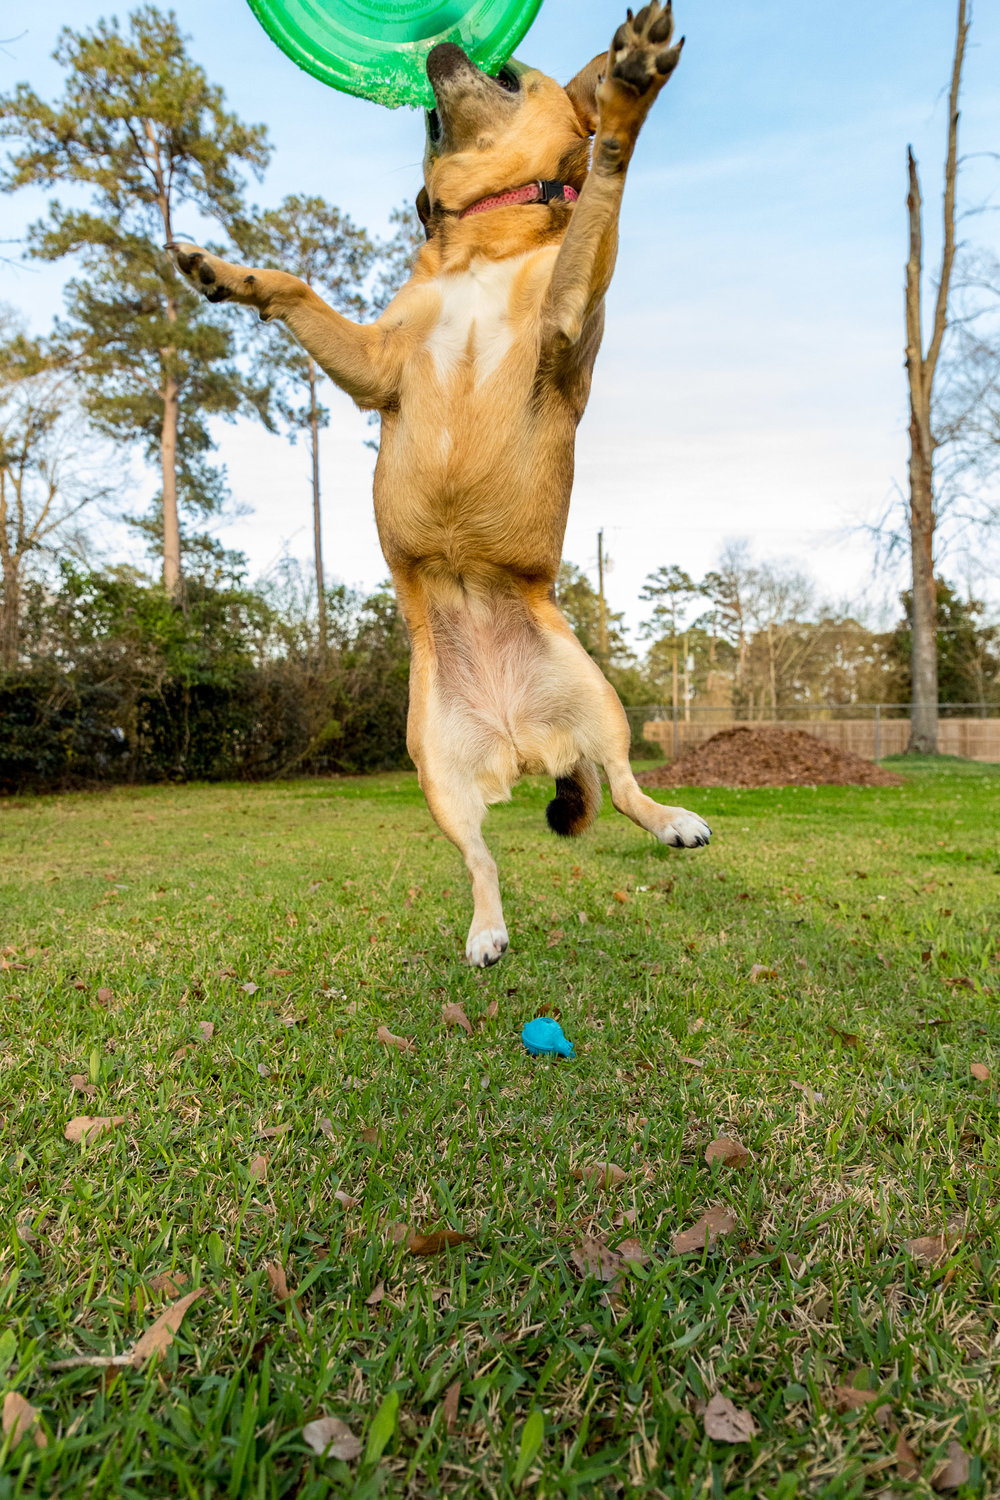 dog gets air to catch frisbee